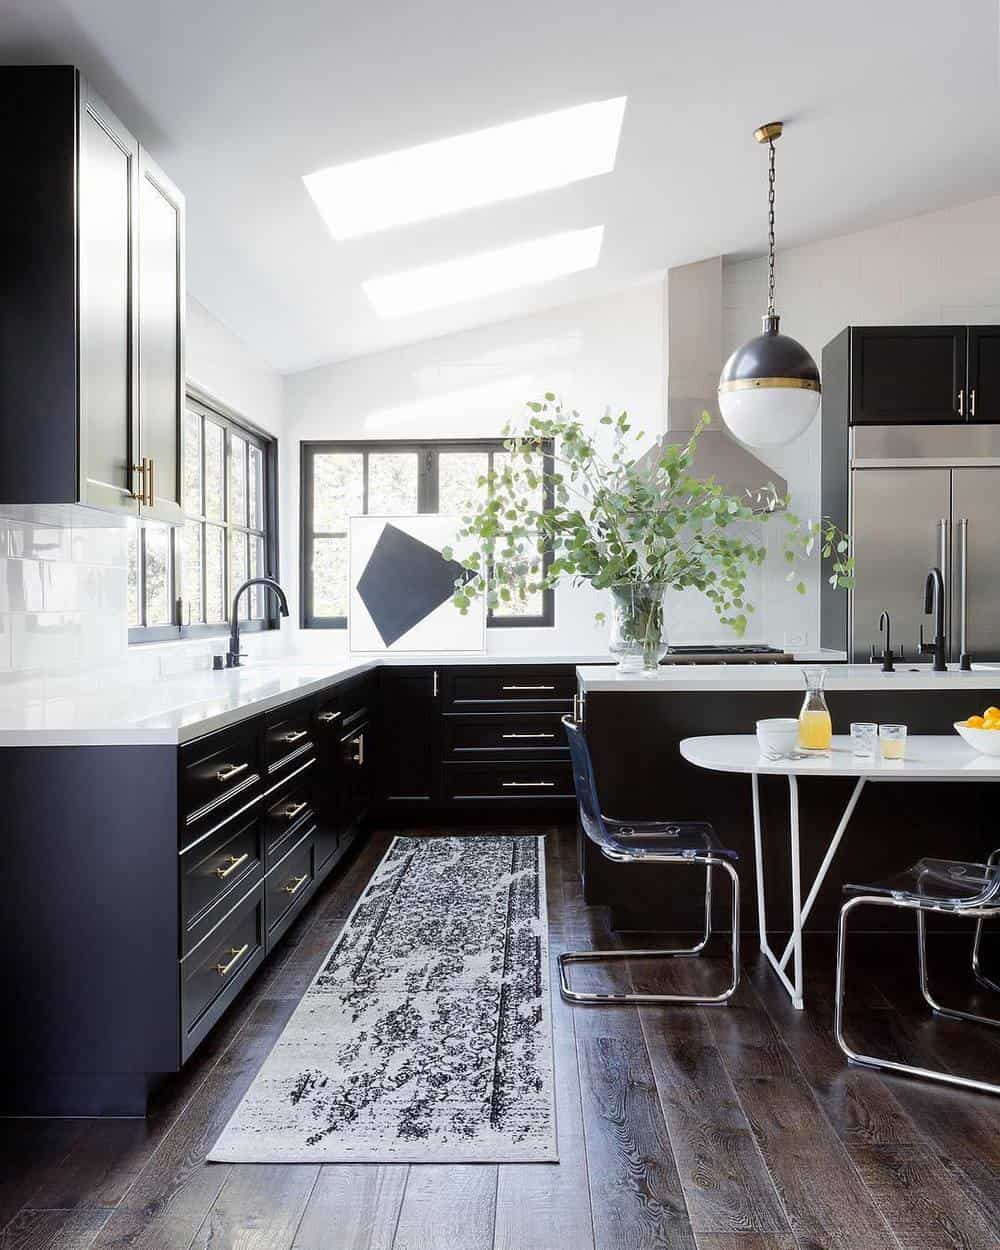 Great Kitchen Island Ideas For Your Inspiration - The Stylish One